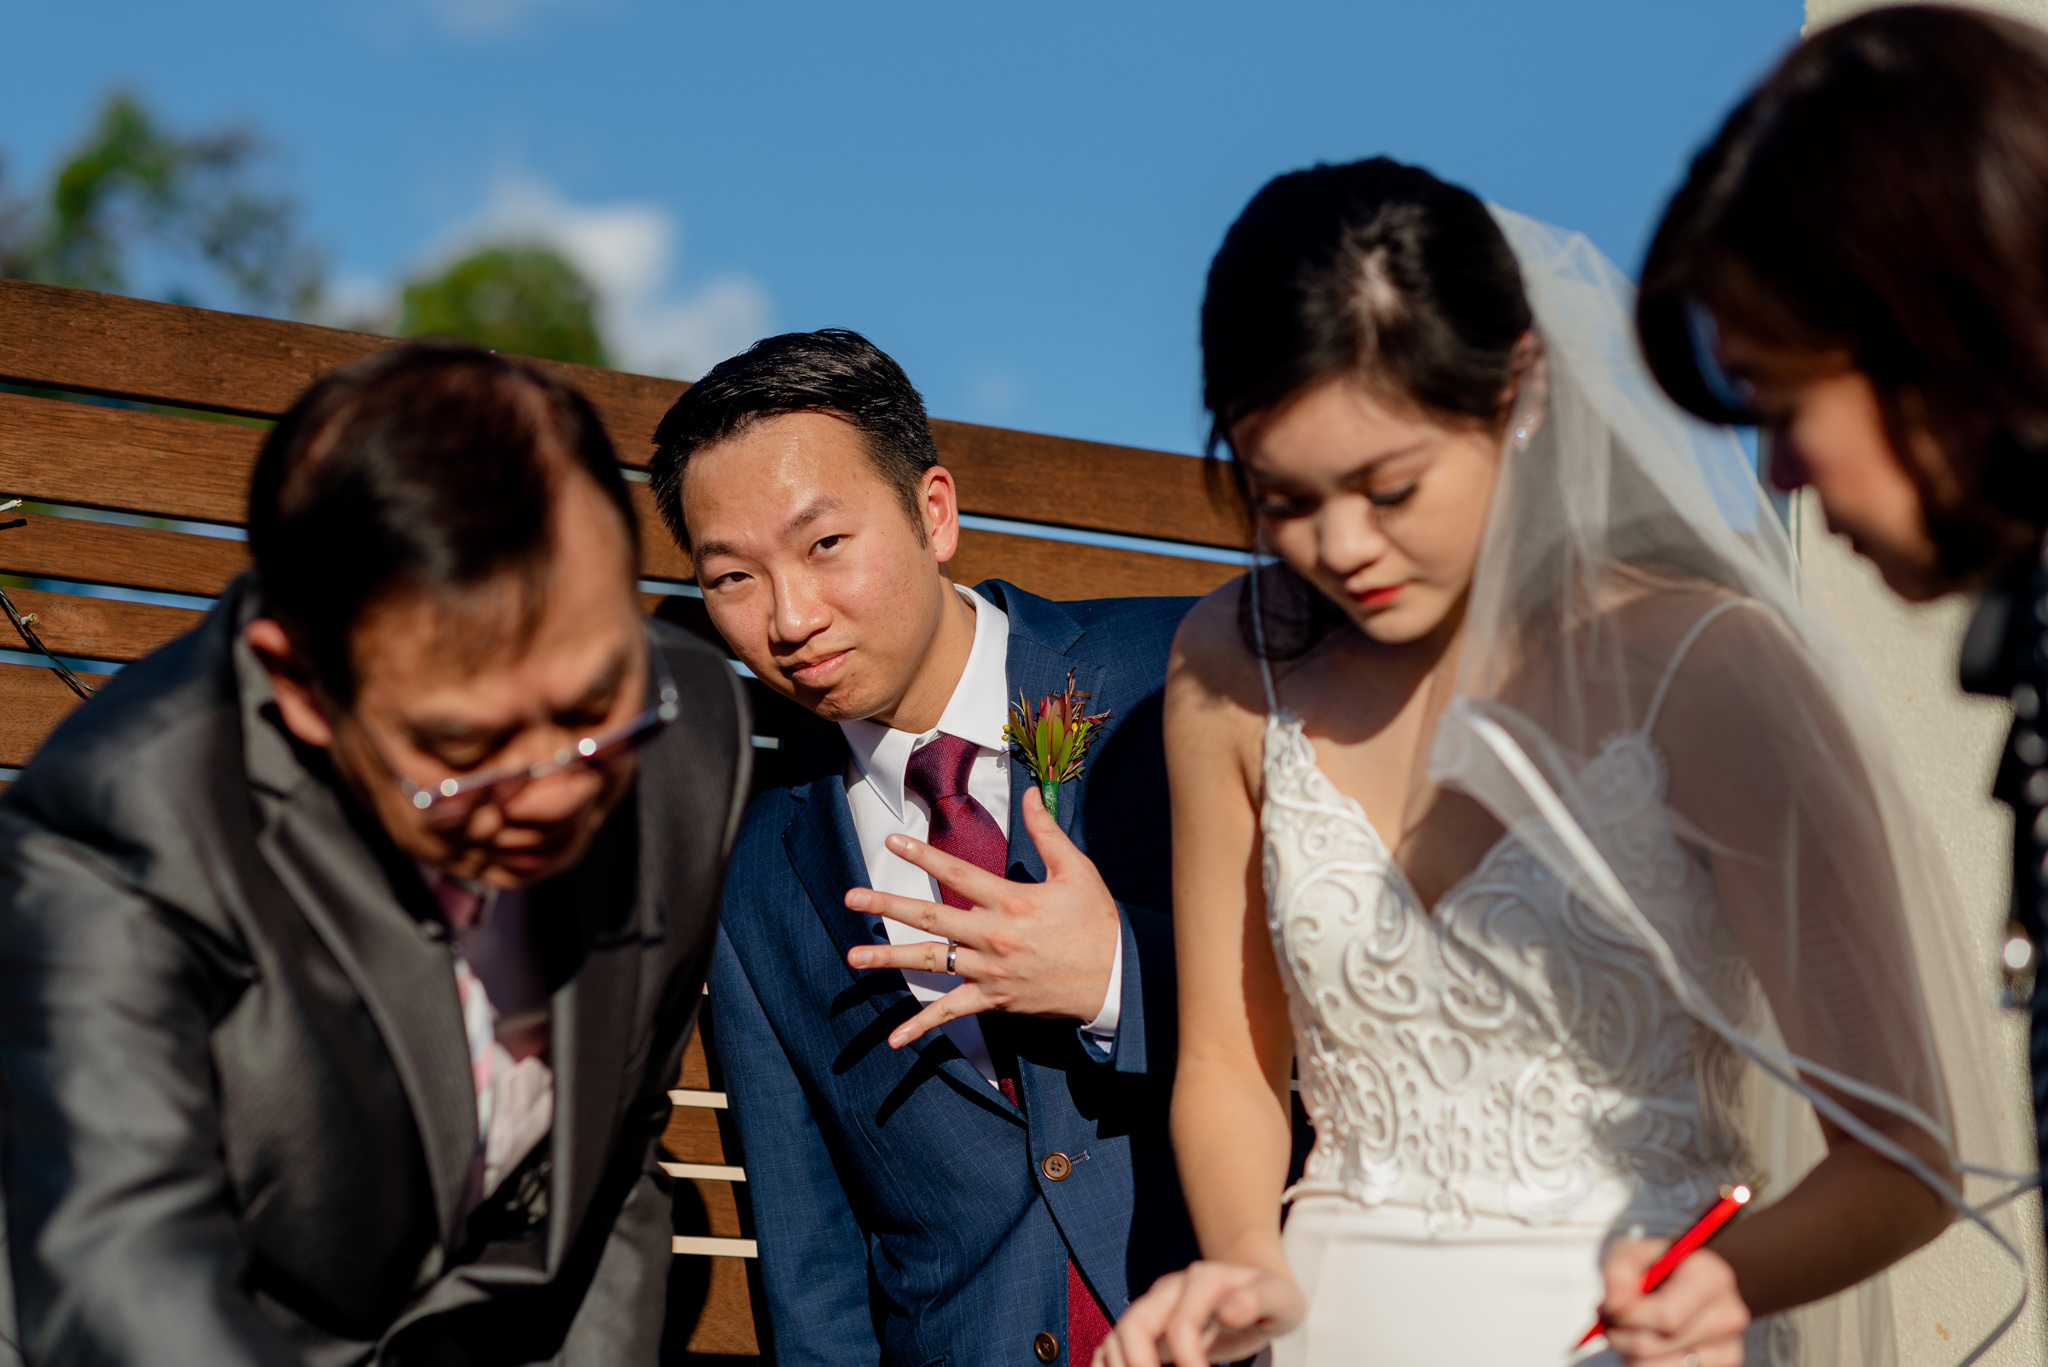 An Asian groom shows the camera his outstretched hand as his bride signs wedding papers